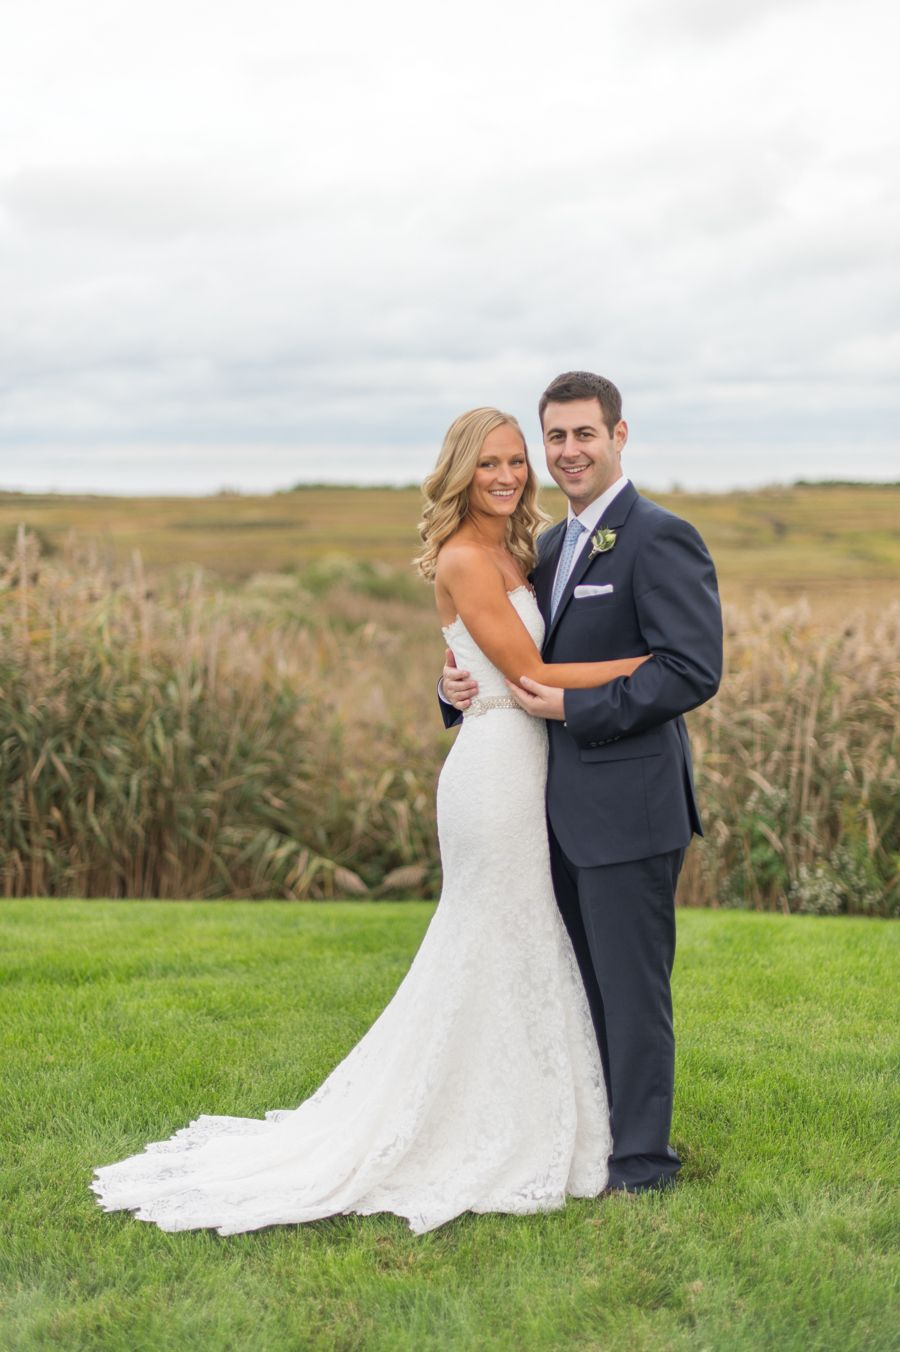 Photography : Leila Brewster | Guildford Yacht Club Wedding | Bride | Groom | True Event | http://www.trueevent.com http://www.stylemepretty.com/connecticut-weddings/guilford/2015/04/03/elegant-waterfront-wedding-at-the-guilford-yacht-club/